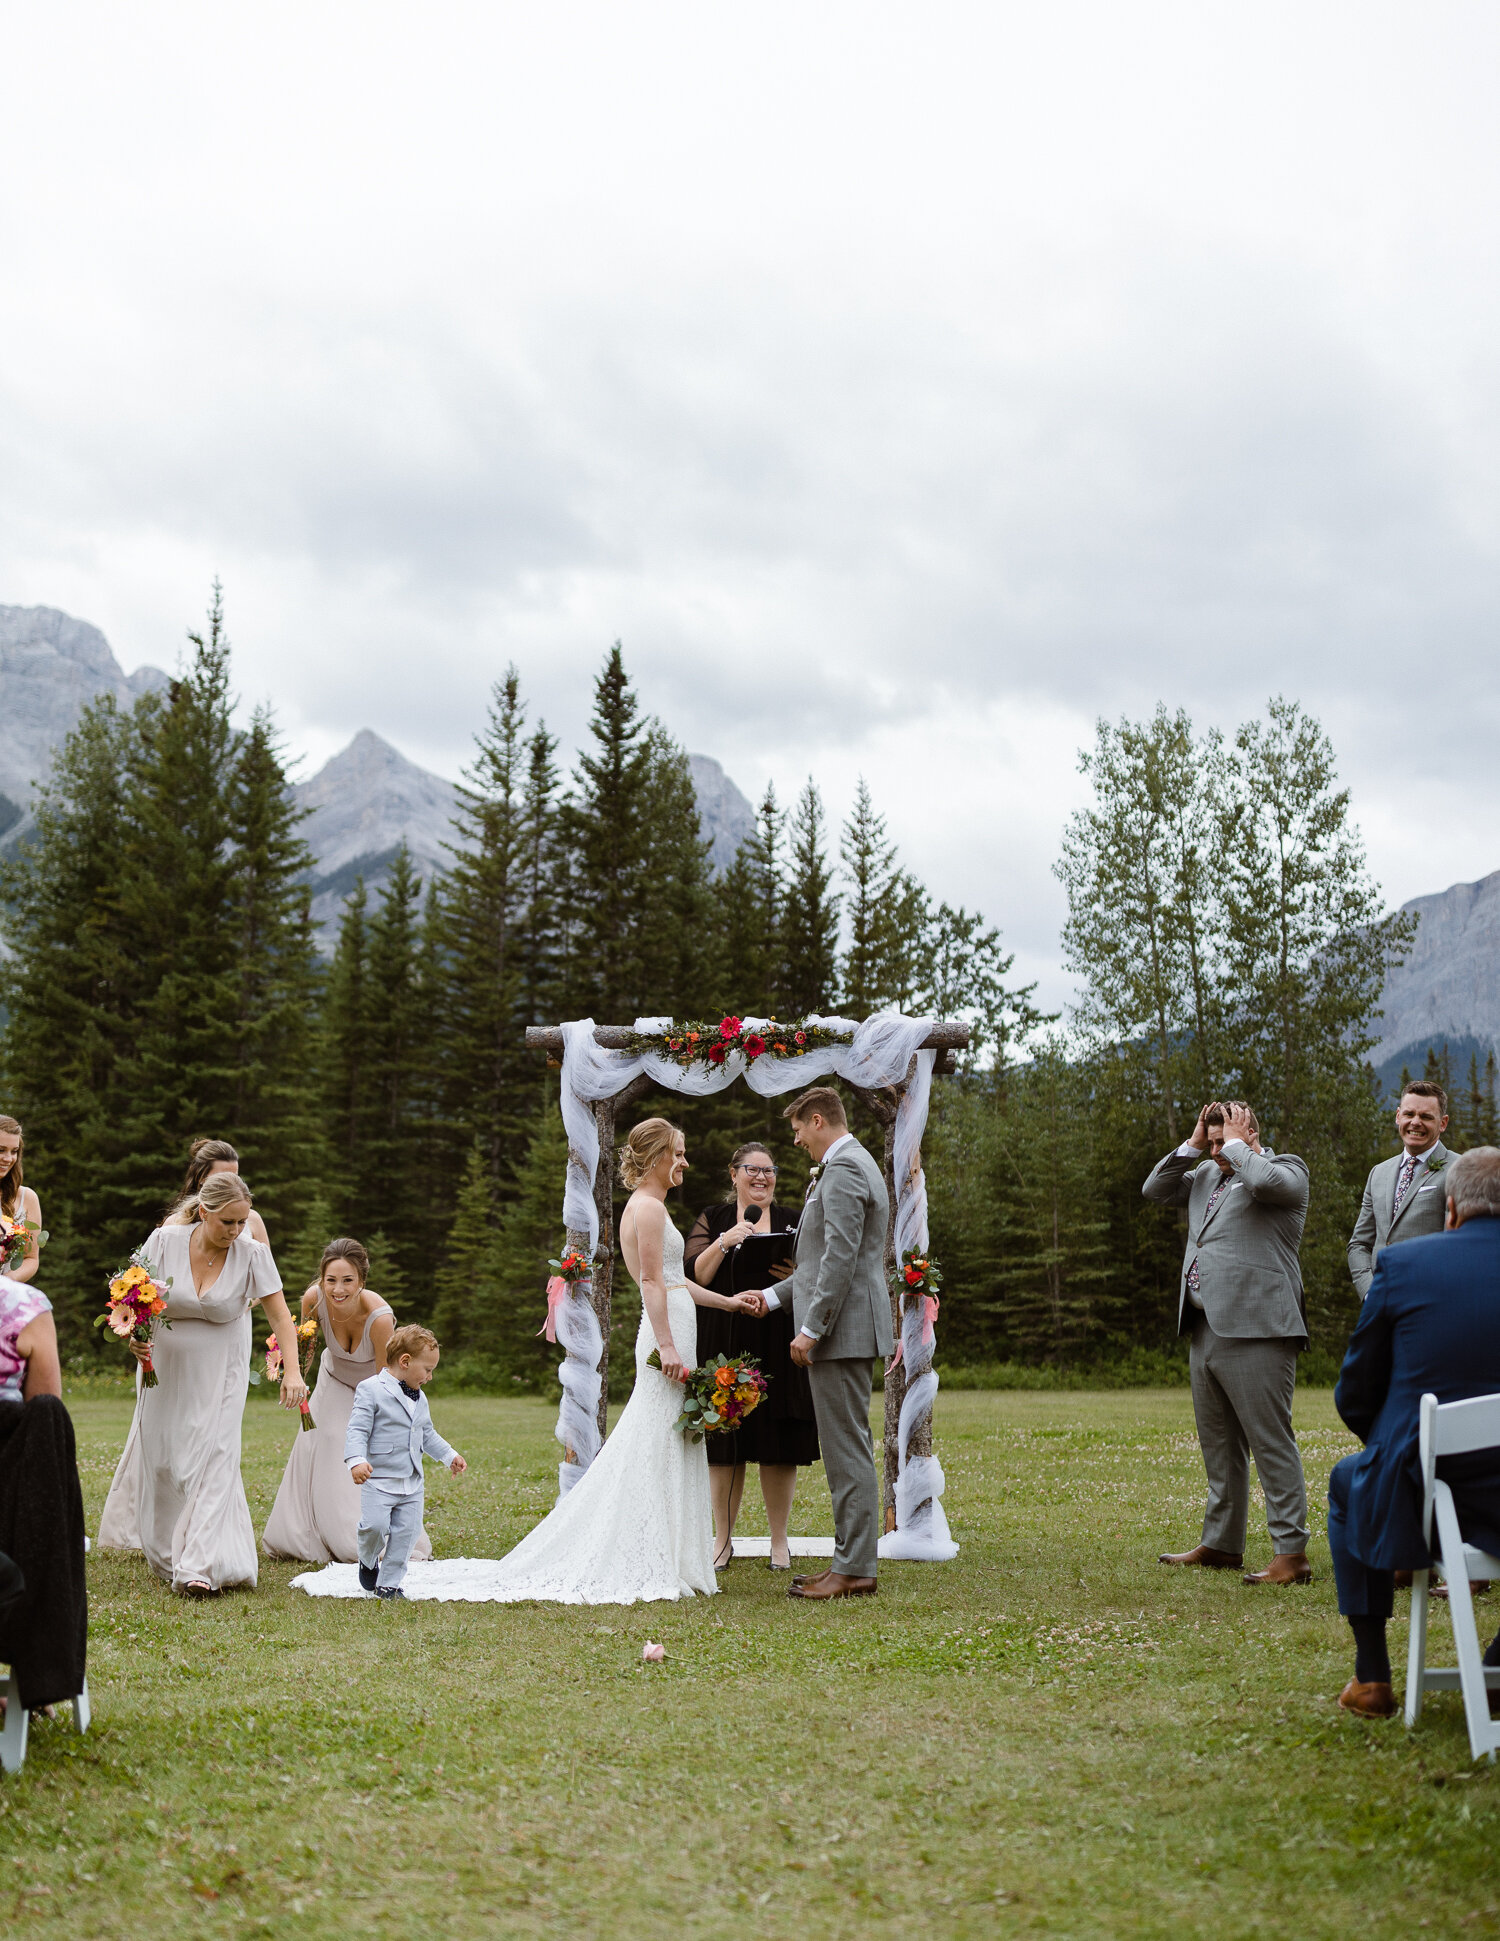 62-Canmore-Alberta-Real-Wedding-Best-Wedding-Photographers-81.JPG